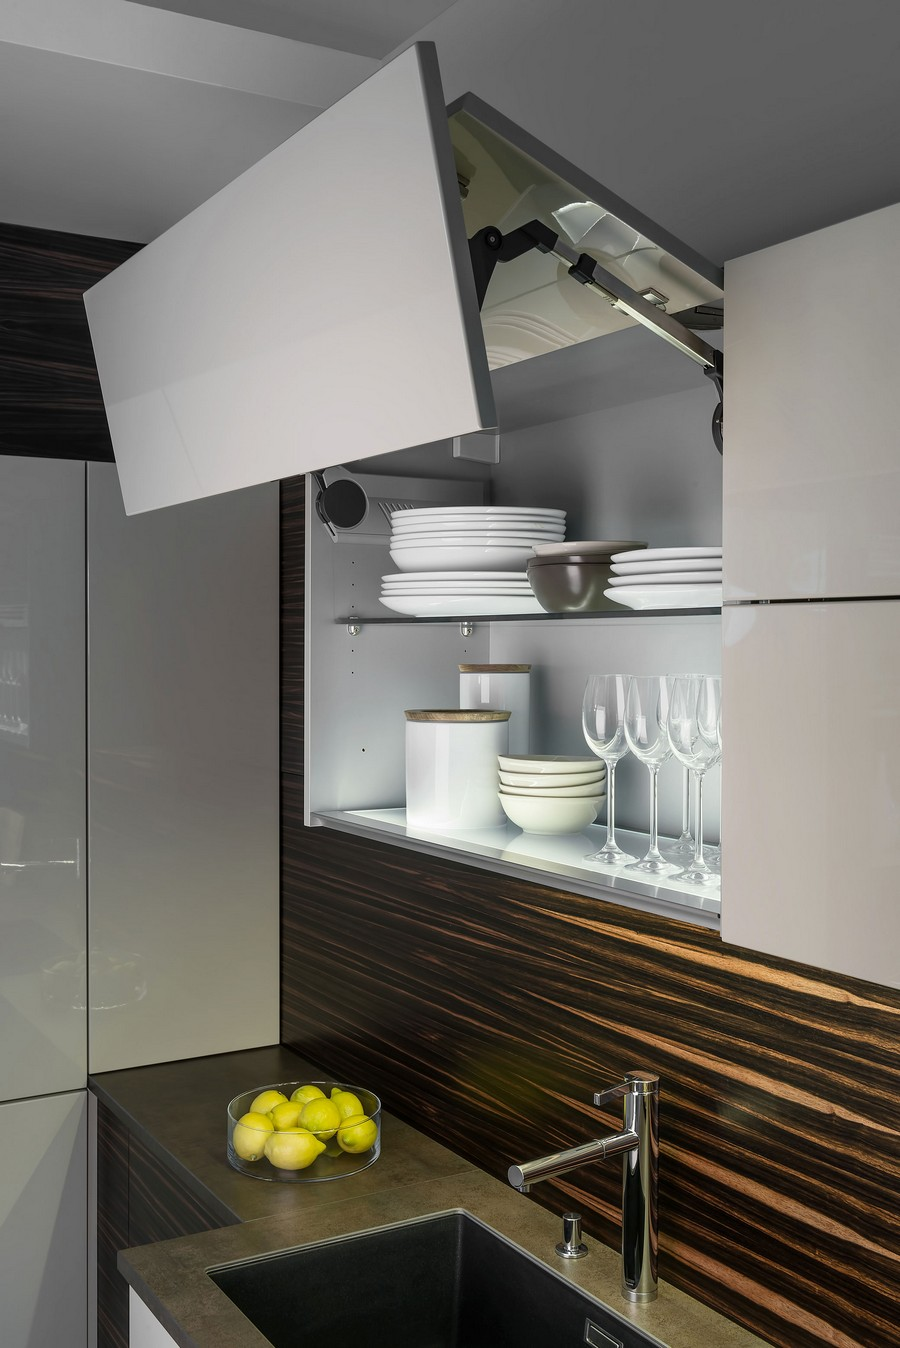 6-lift-up-wall-top-kitchen-cabinet-gray-faux-wood-backsplash-dark-base-cabinets-brown-worktop